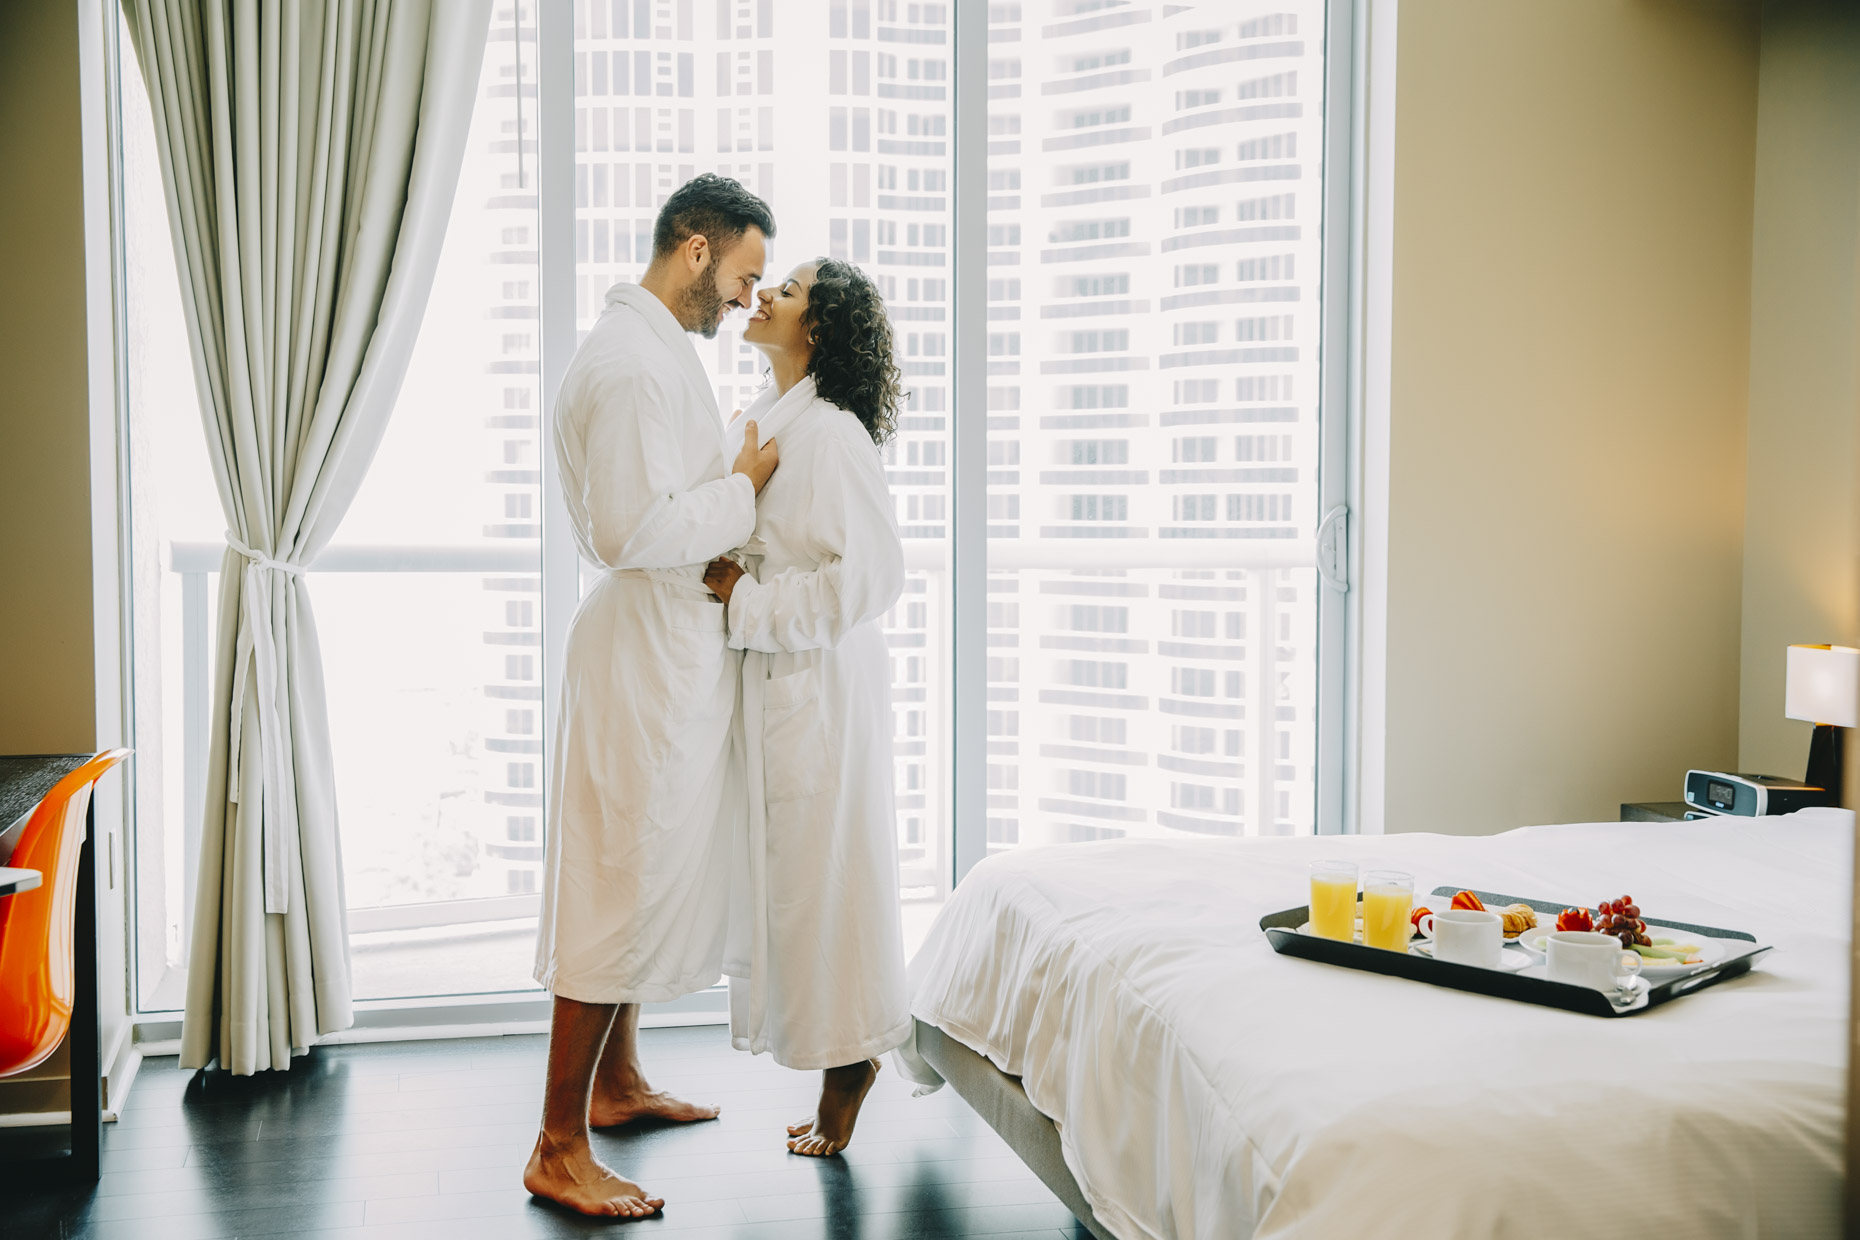 Couple-in-hotel-robes-embracing-smiling-room-service-Inti-St-Clair-is201504251251